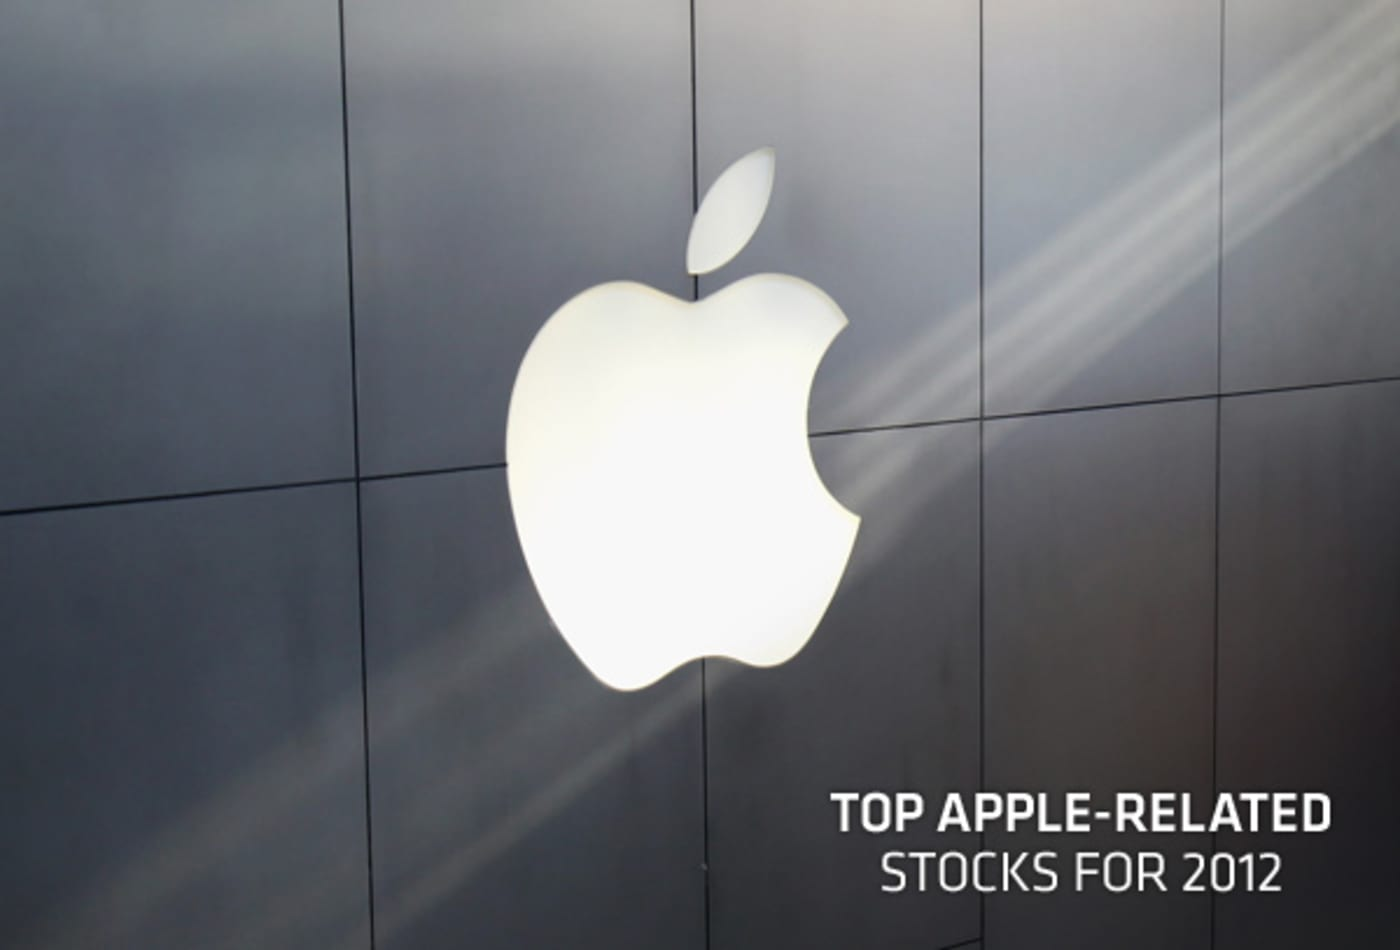 top-apple-related-stocks-cover.jpg